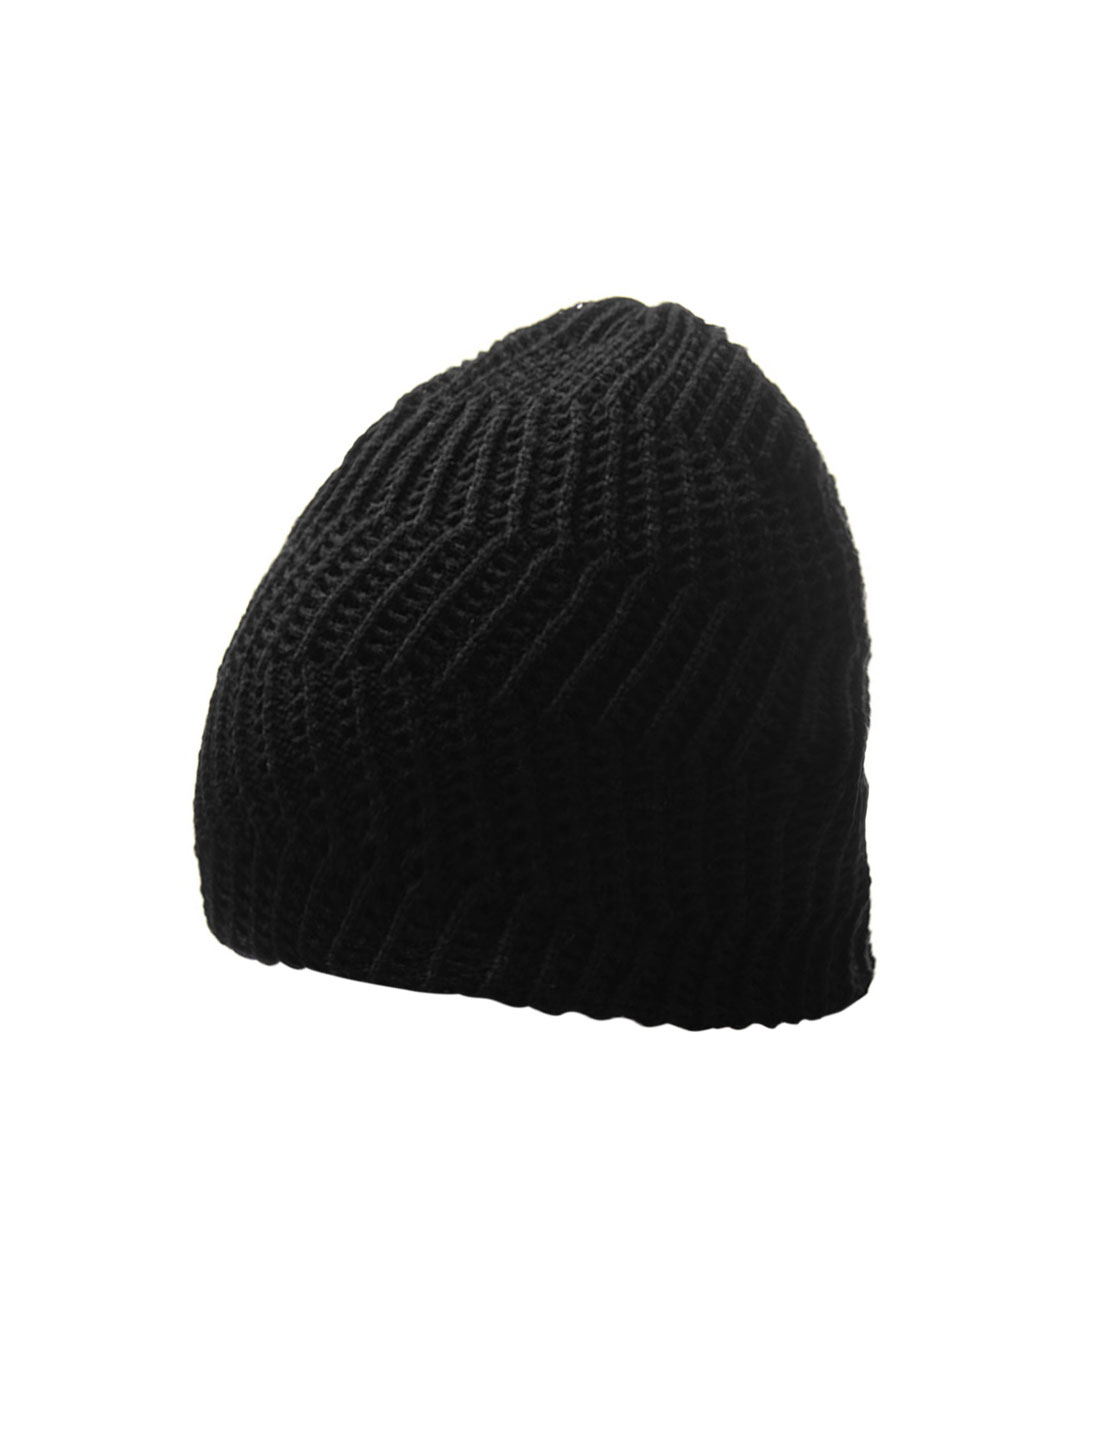 Men Black NEW Textured Solid Color Stretch Beanie Hat